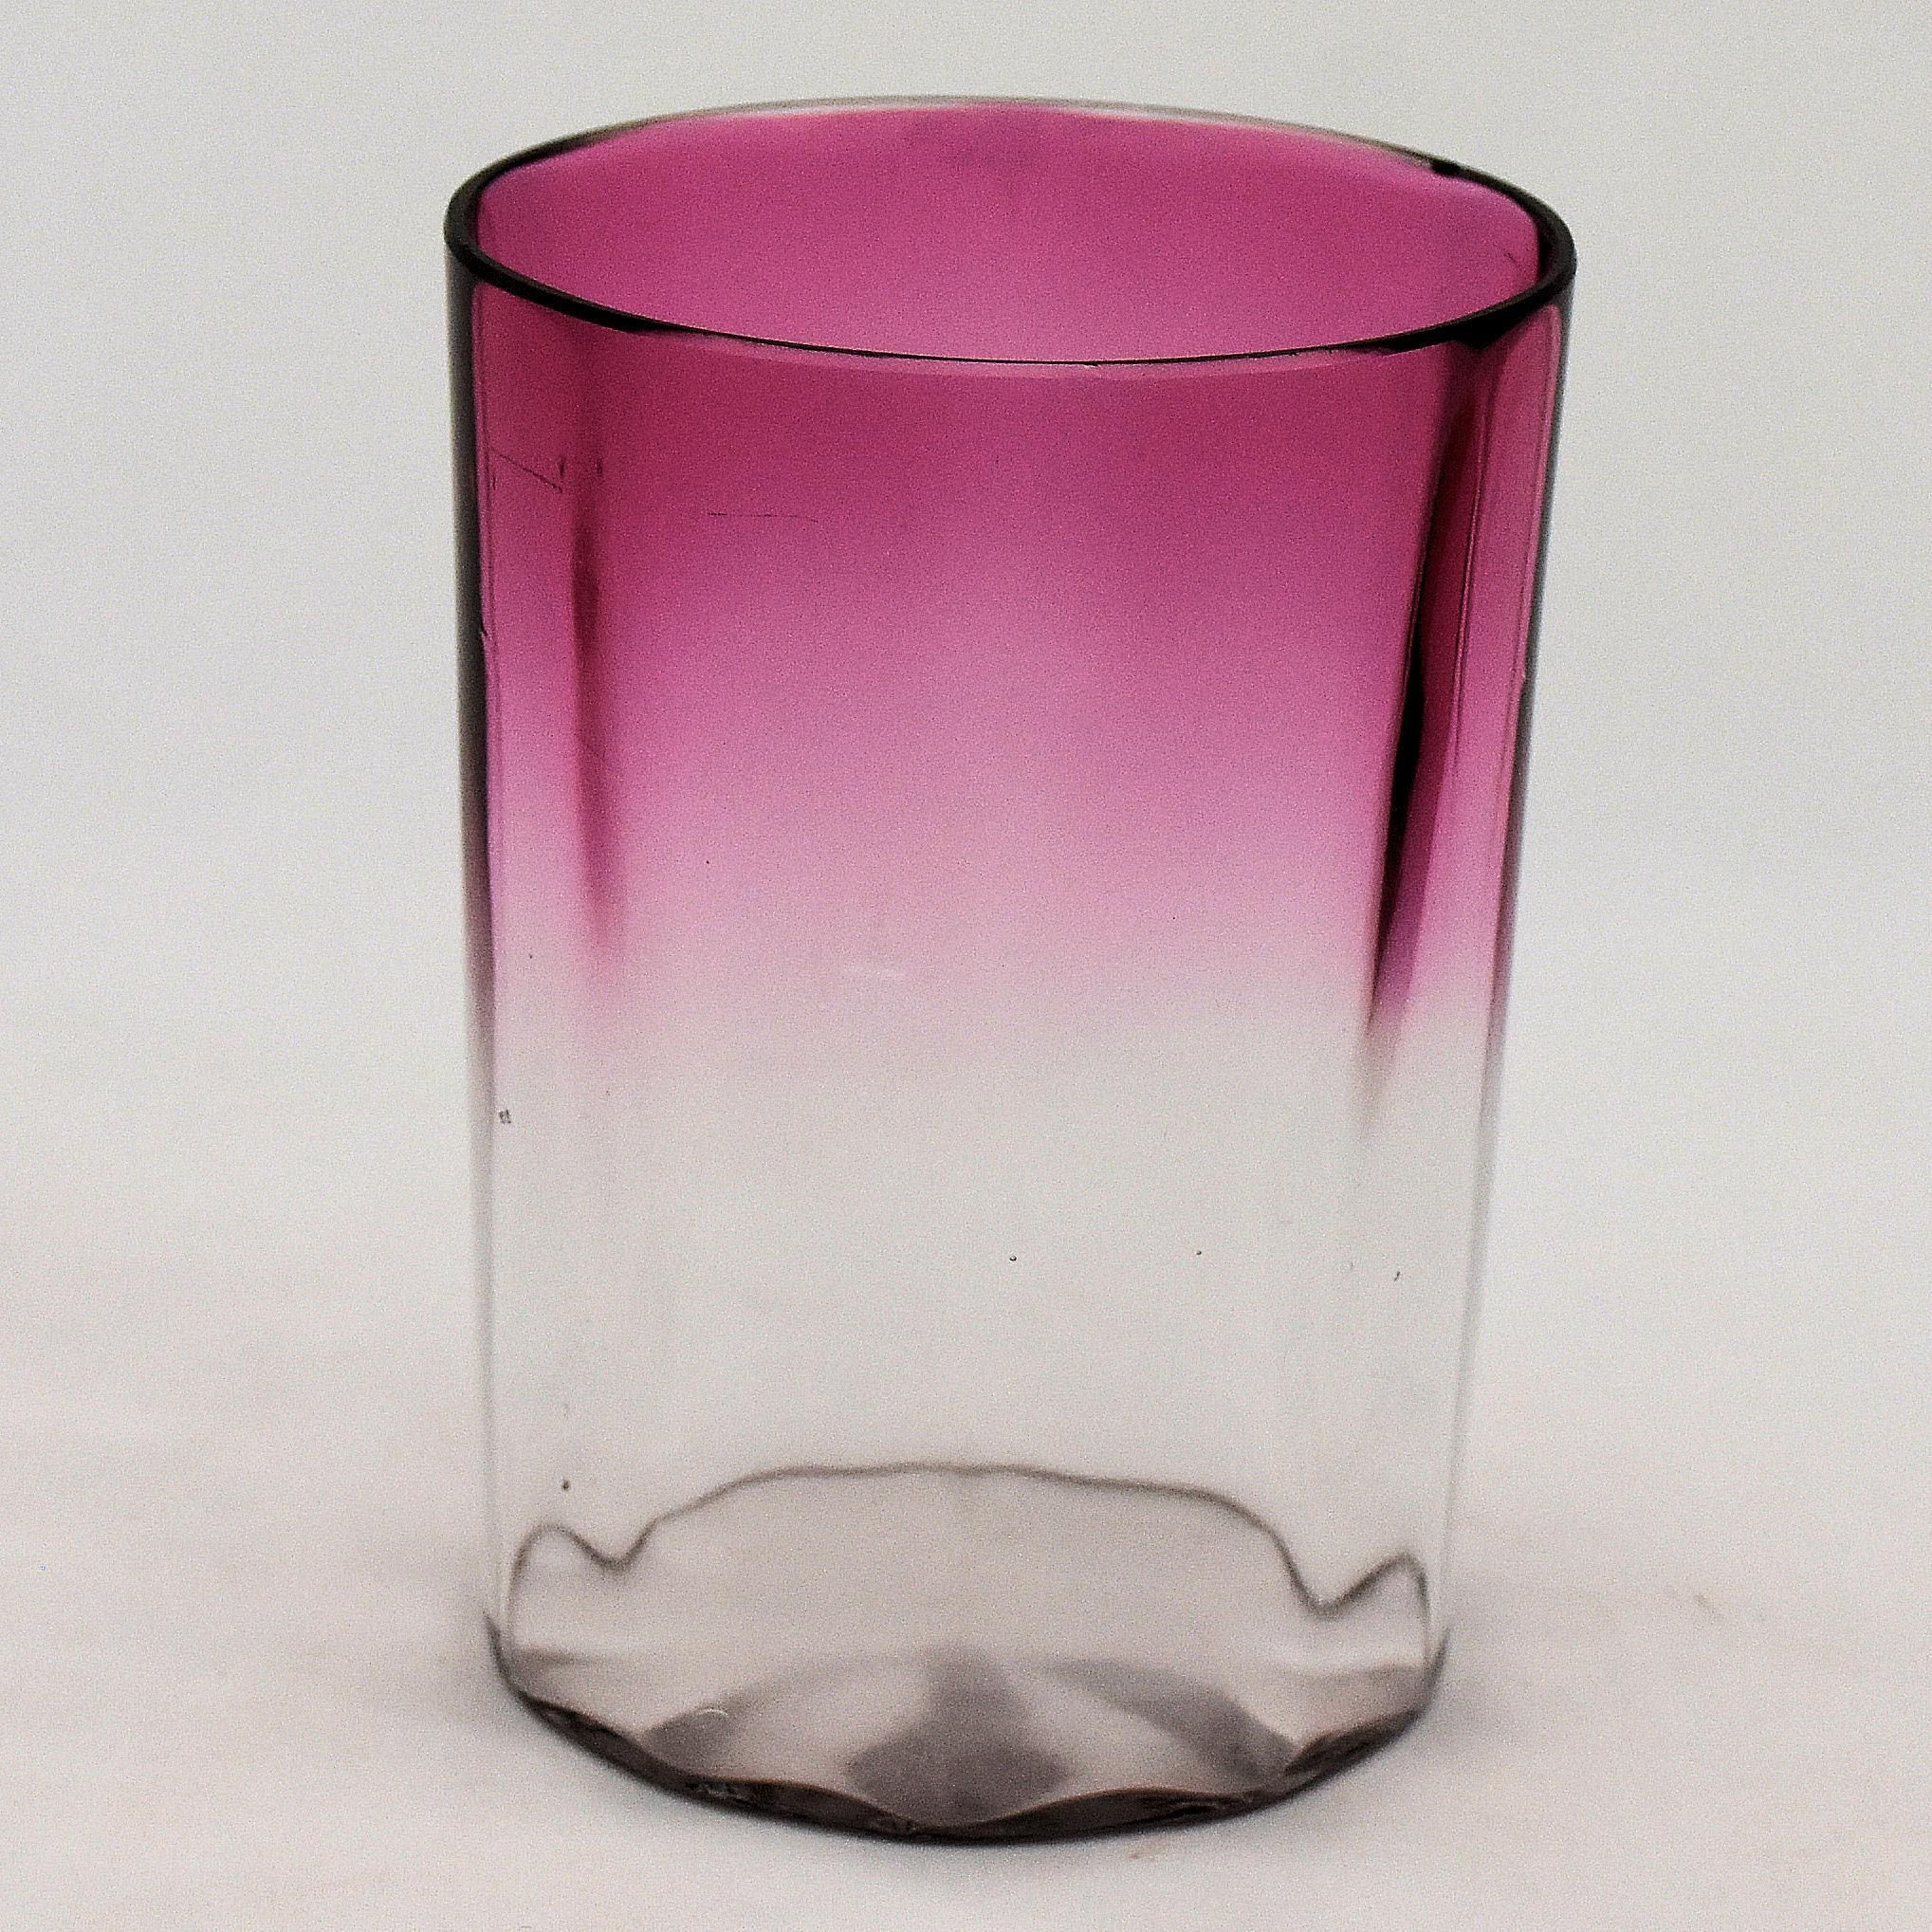 Purple Swirl Vase Of Victorian Cranberry to Clear Glass Tumbler Panel Optic Antik In Victorian Cranberry to Clear Glass Tumbler Panel Optic Valentines Day Gift From Antikavenue On Rubylane Victorian Artglass Cranberry